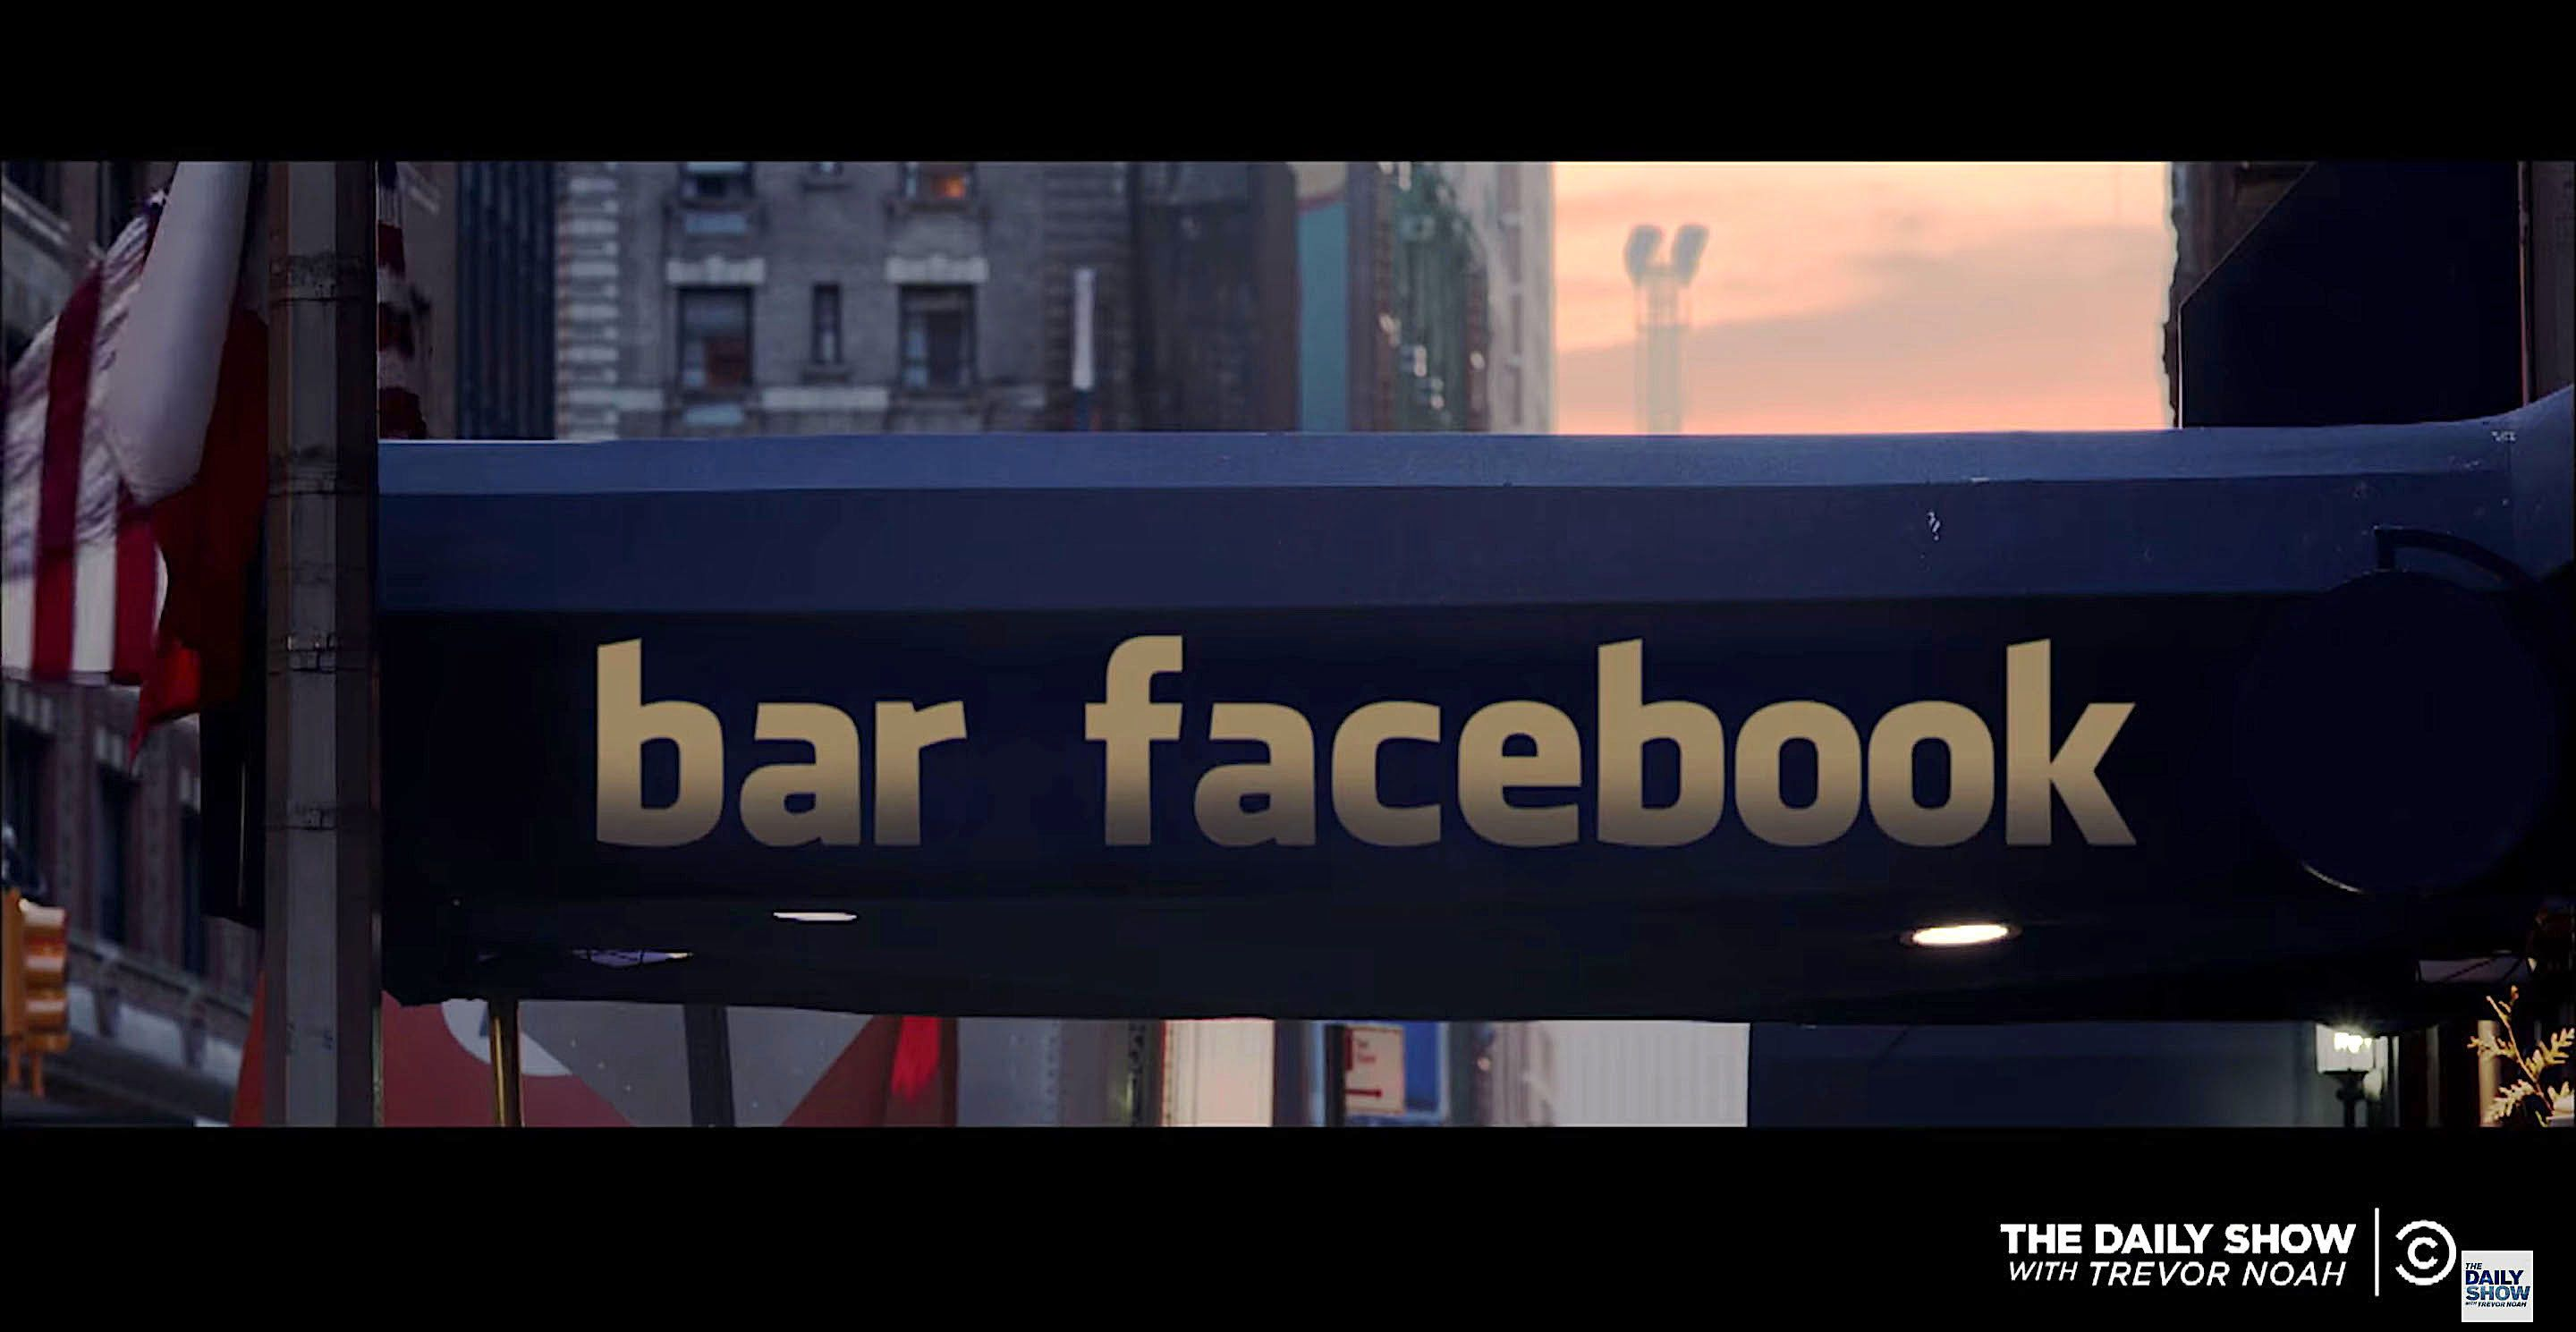 Trevor Noah: What If Facebook Was A Physical